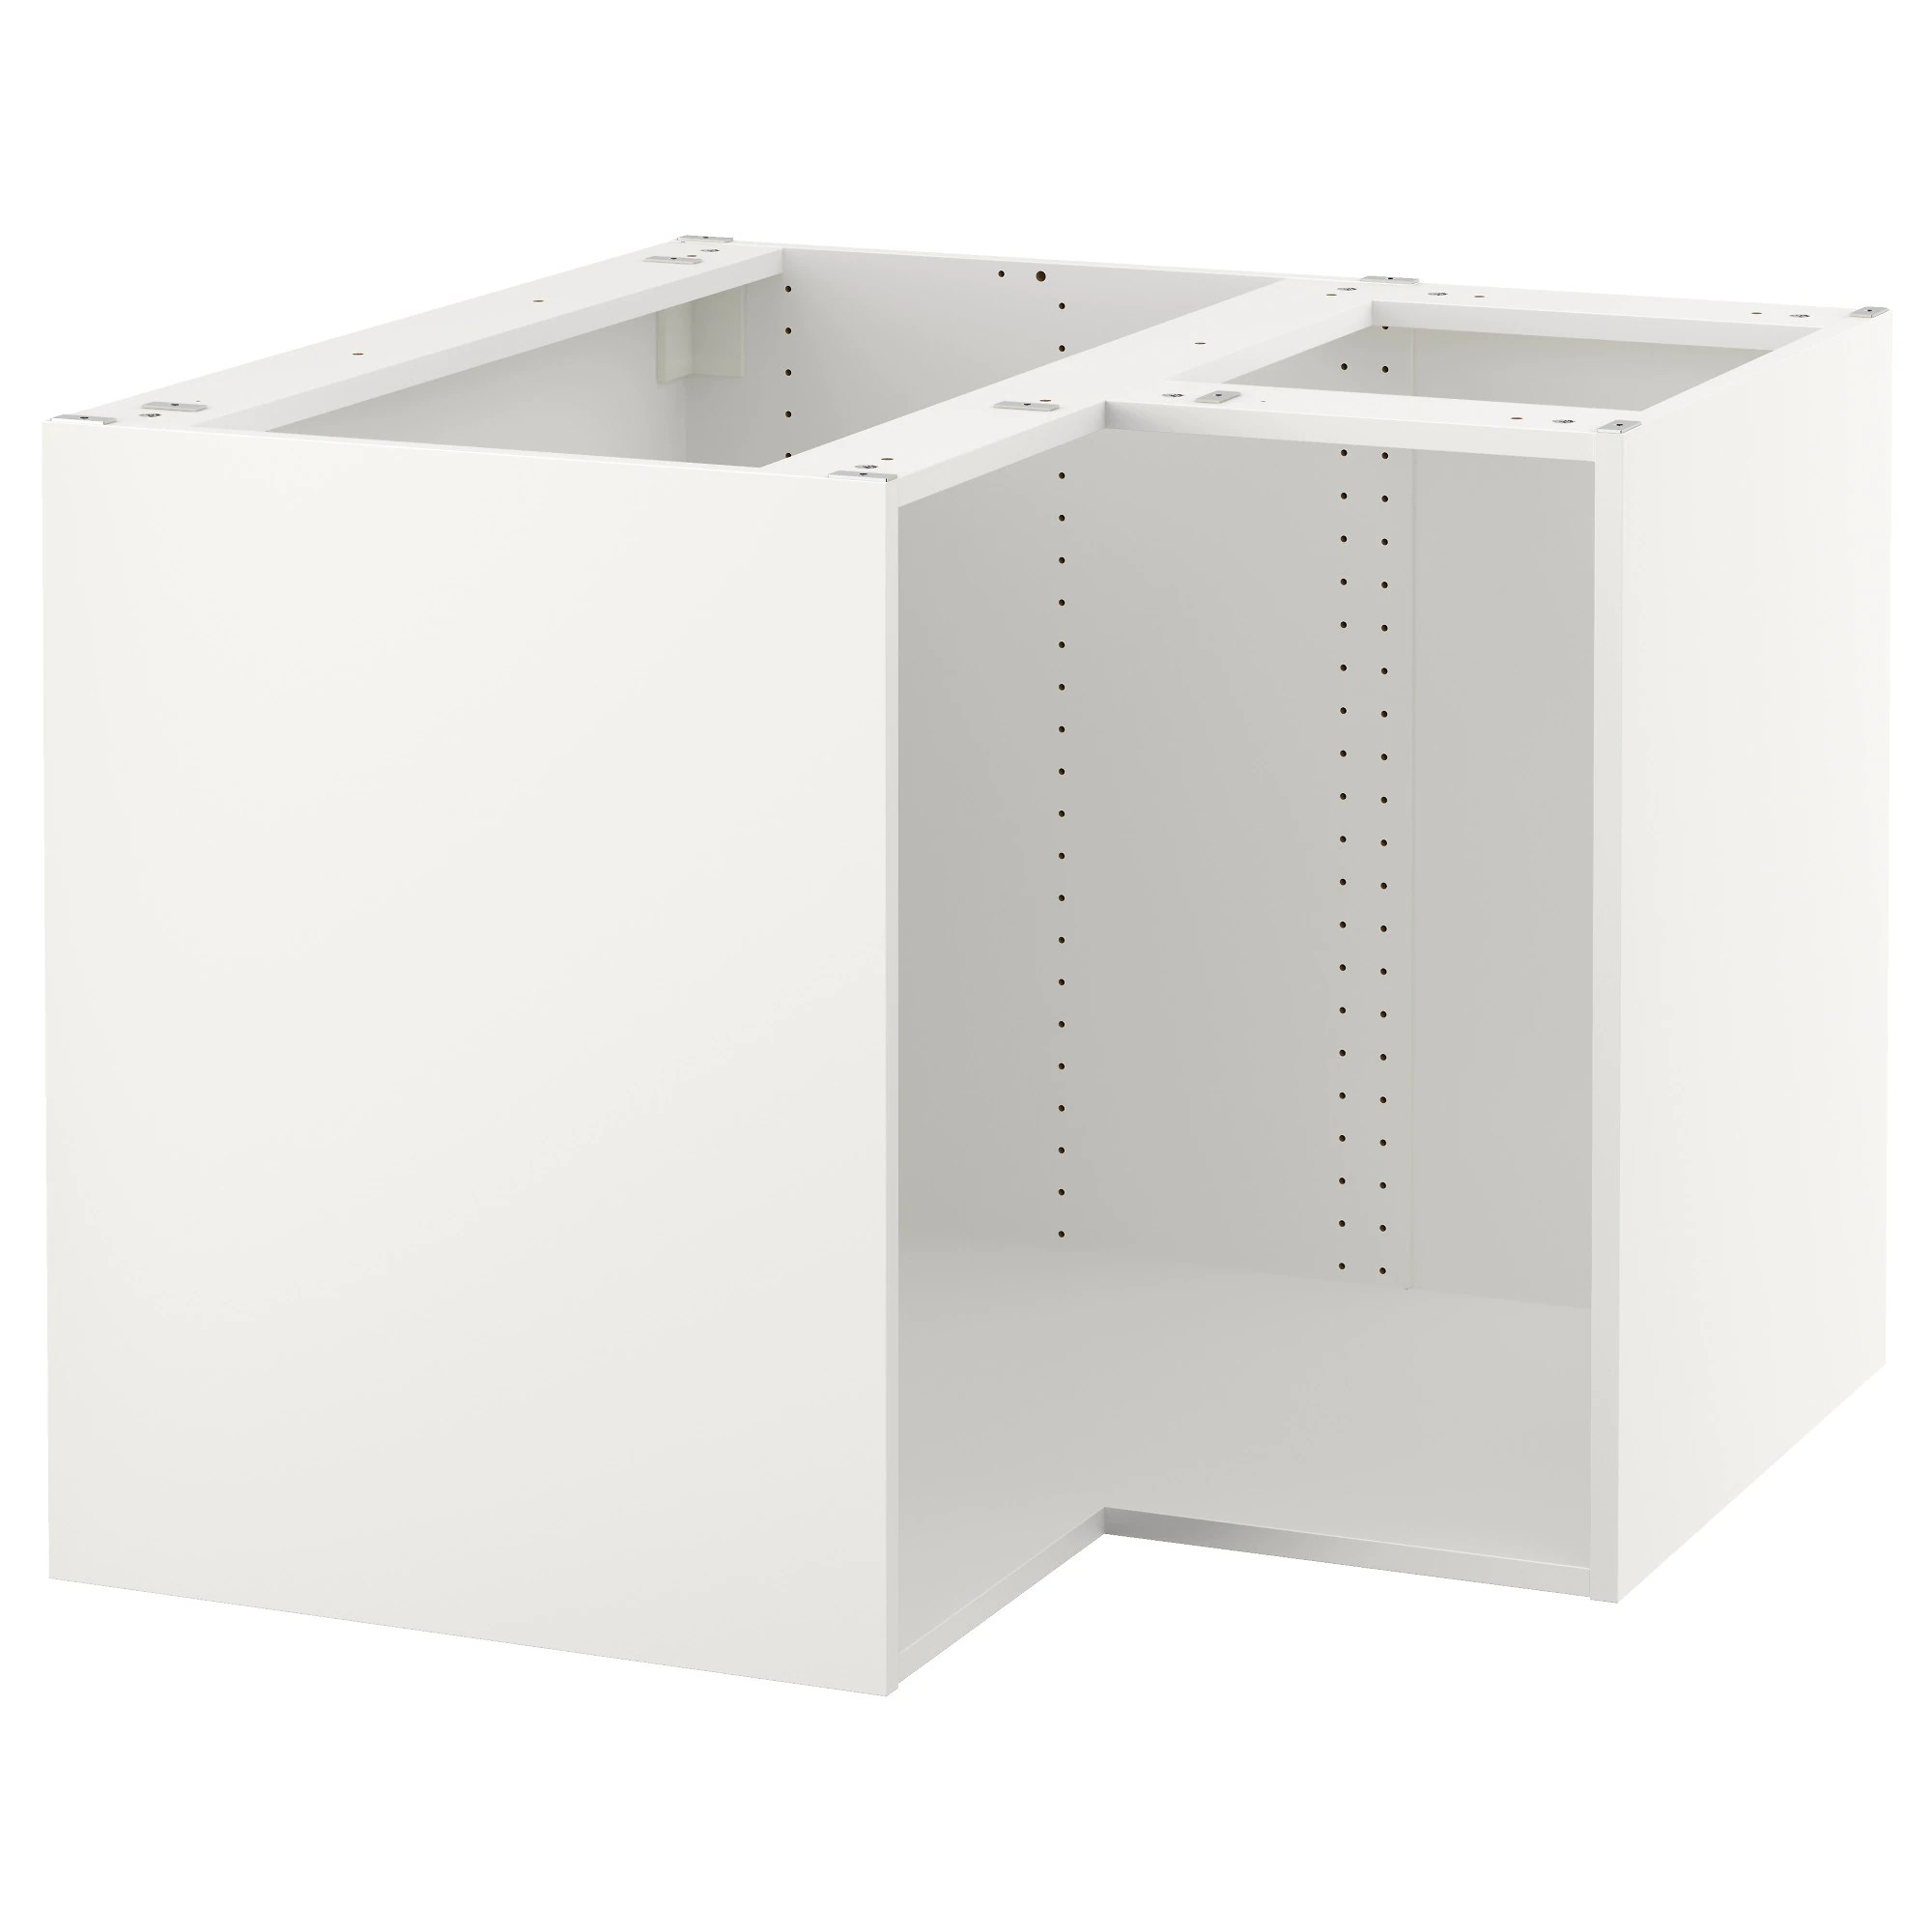 kitchen cabinets with legs SEKTION base corner cabinet frame white Depth without suspension rail 37 3 4